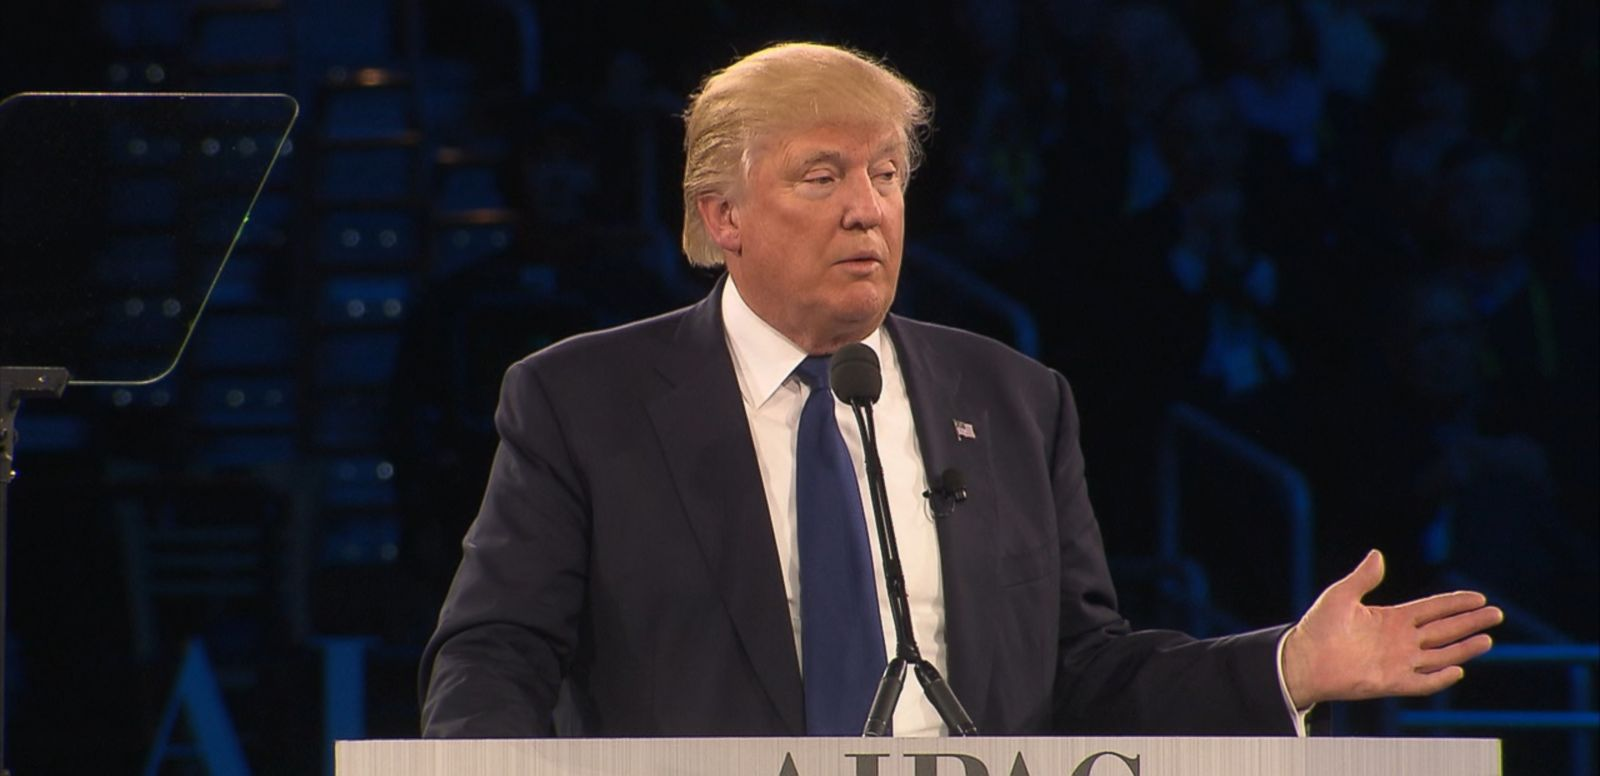 VIDEO: Donald Trump told the annual AIPAC convention that he will stand with Israel if elected president.